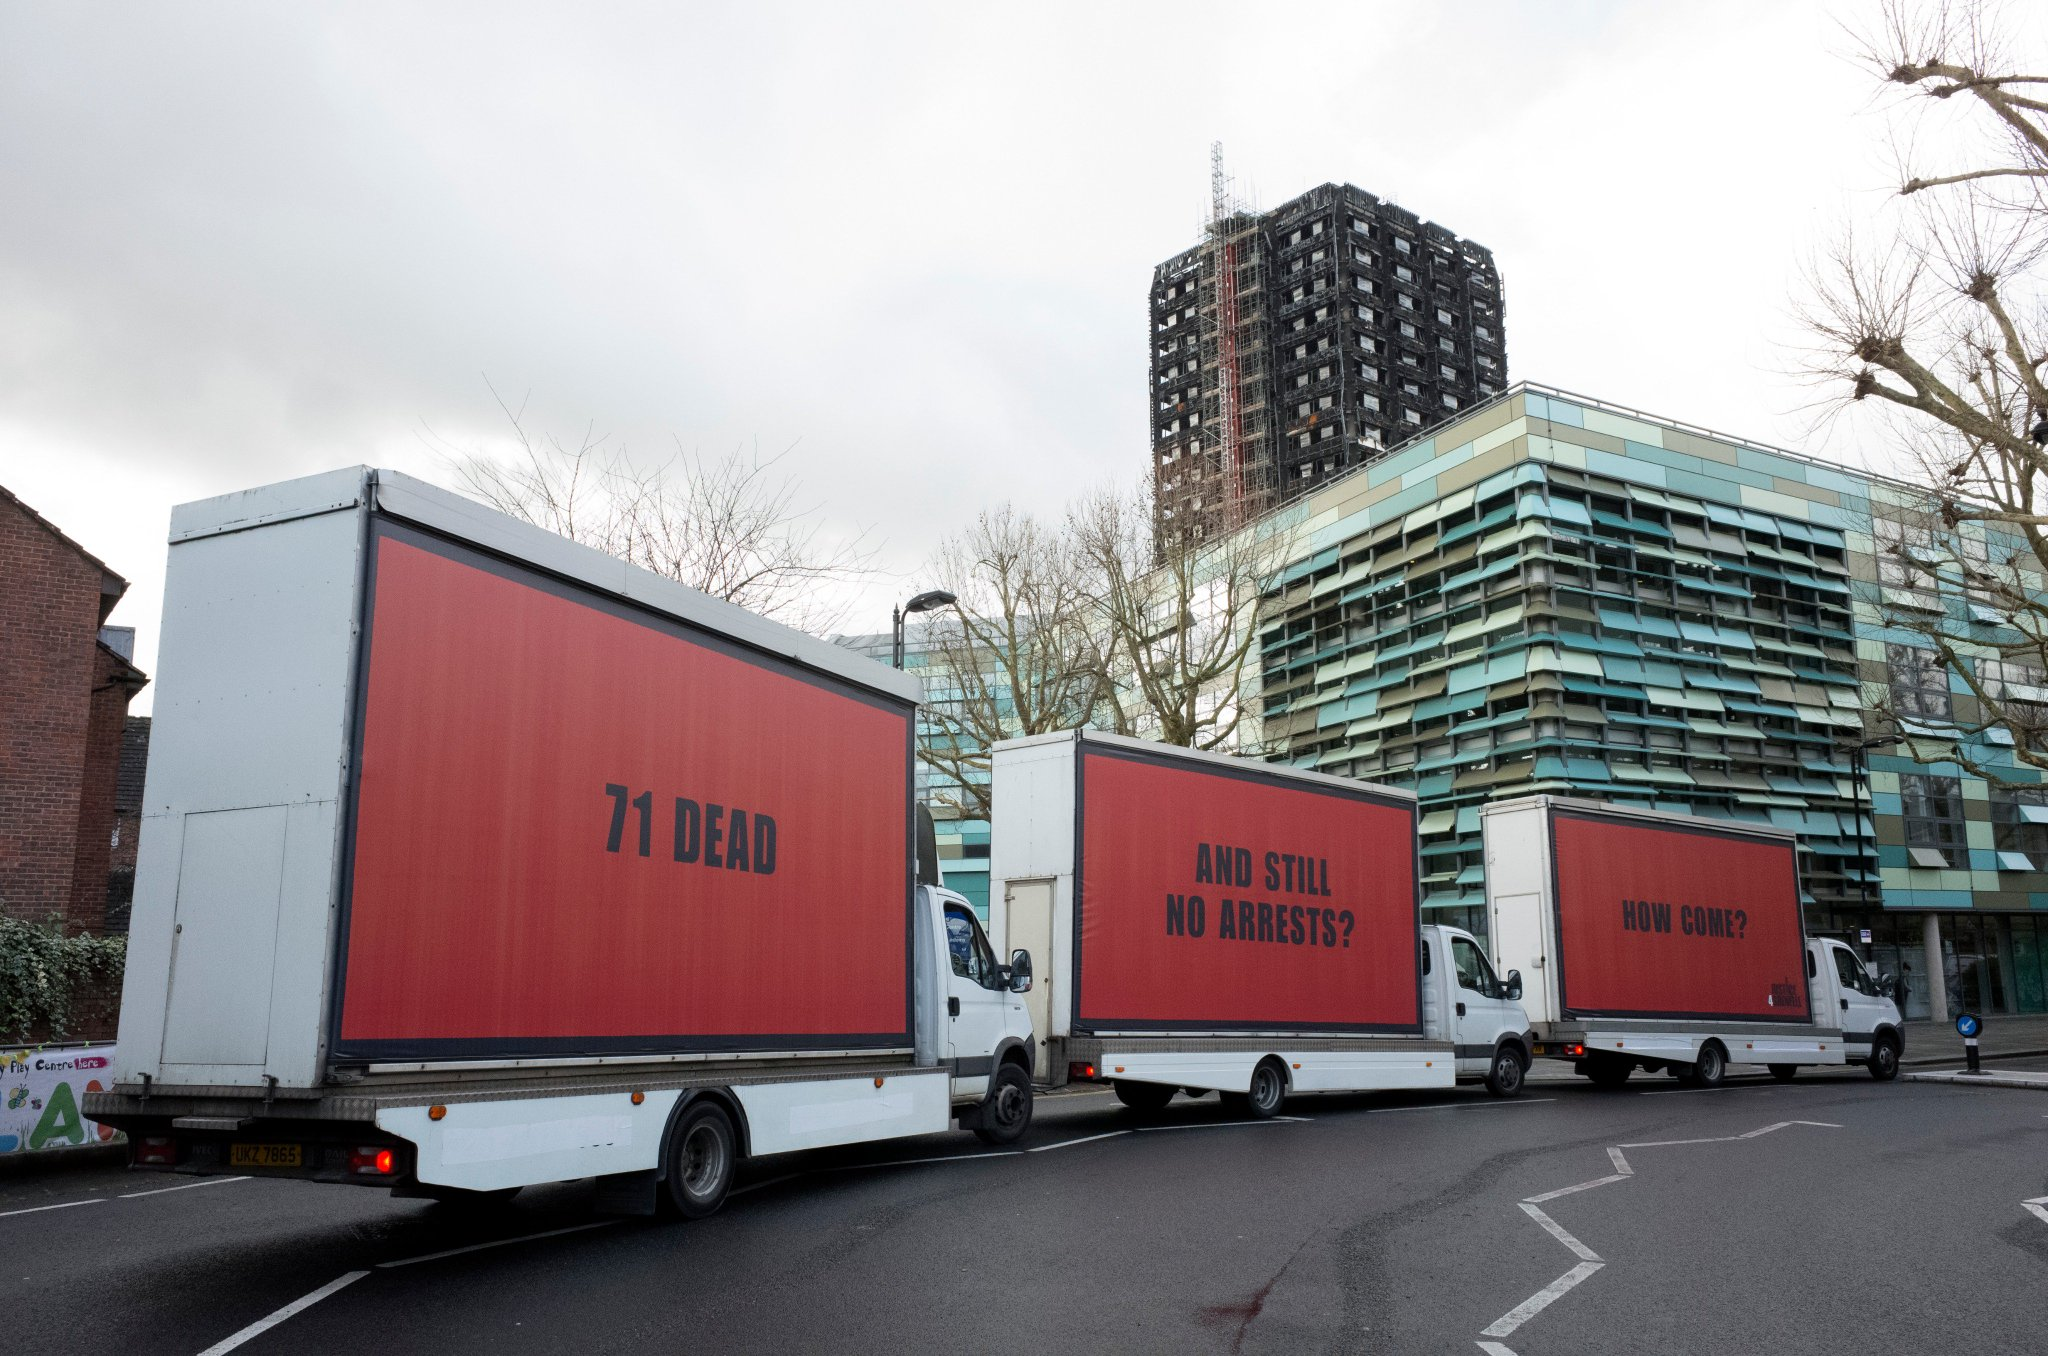 RT @BBHLabs: 3 BILLBOARDS OUTSIDE GRENFELL TOWER, LONDON https://t.co/c3Bah13opn #Justice4Grenfell https://t.co/QvhWxPUBQl